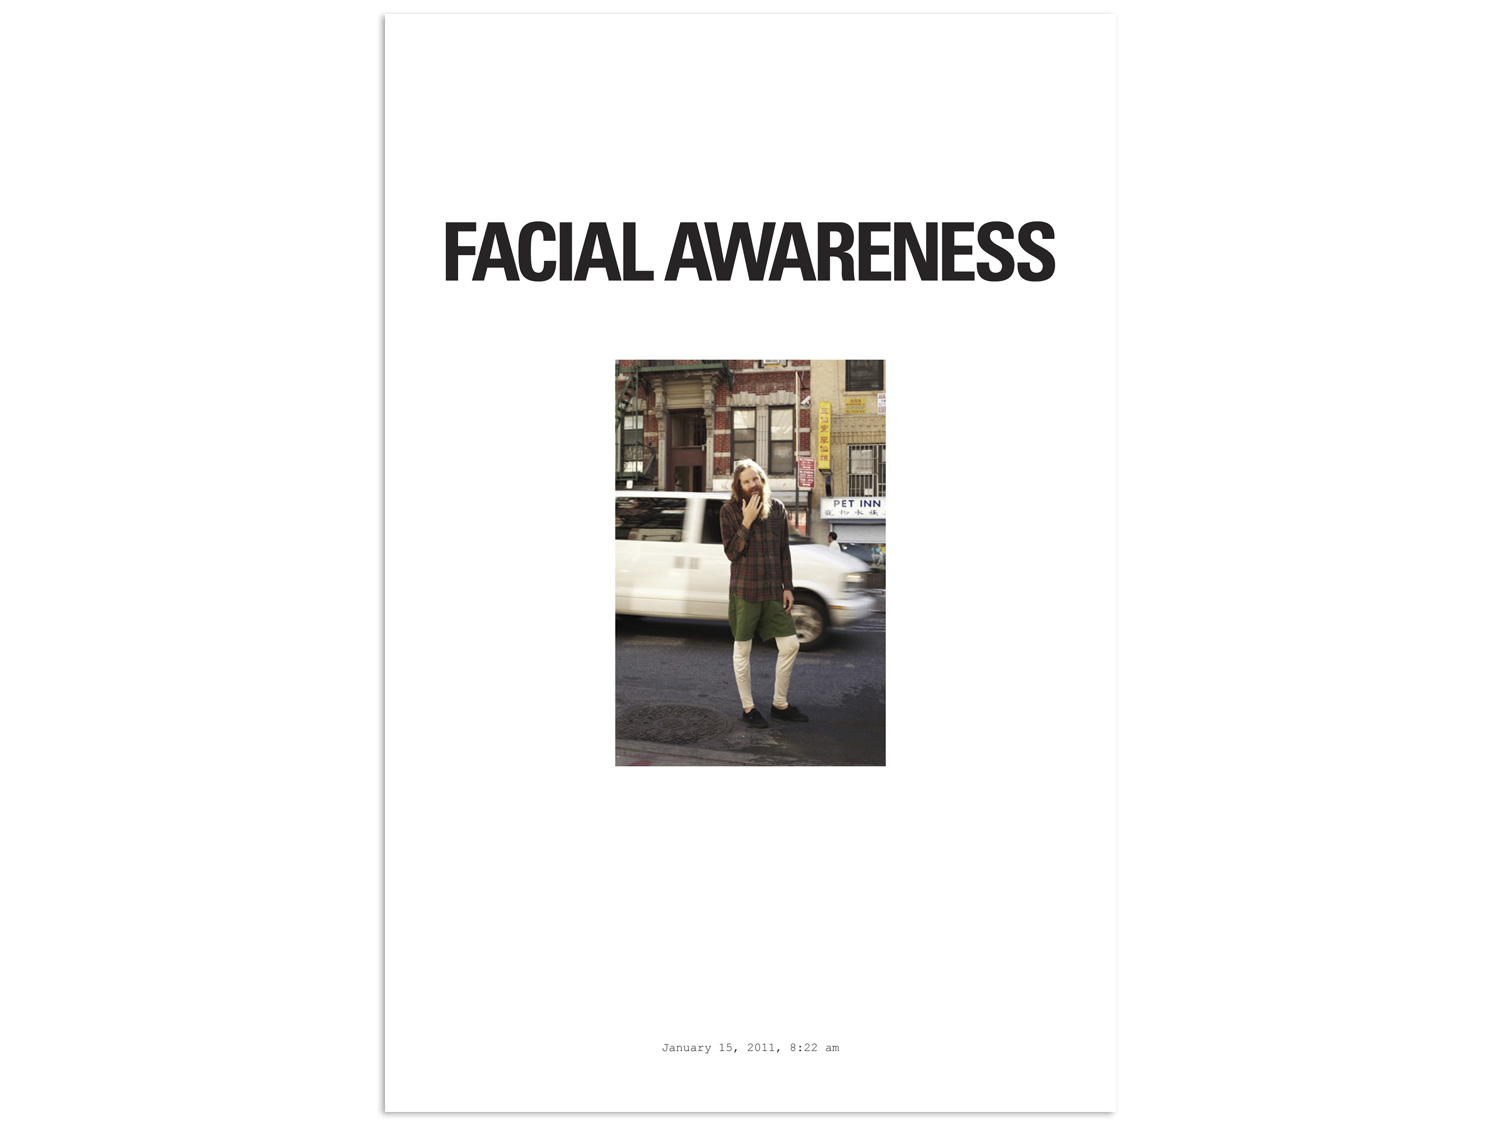 12/31 – Facial Awareness